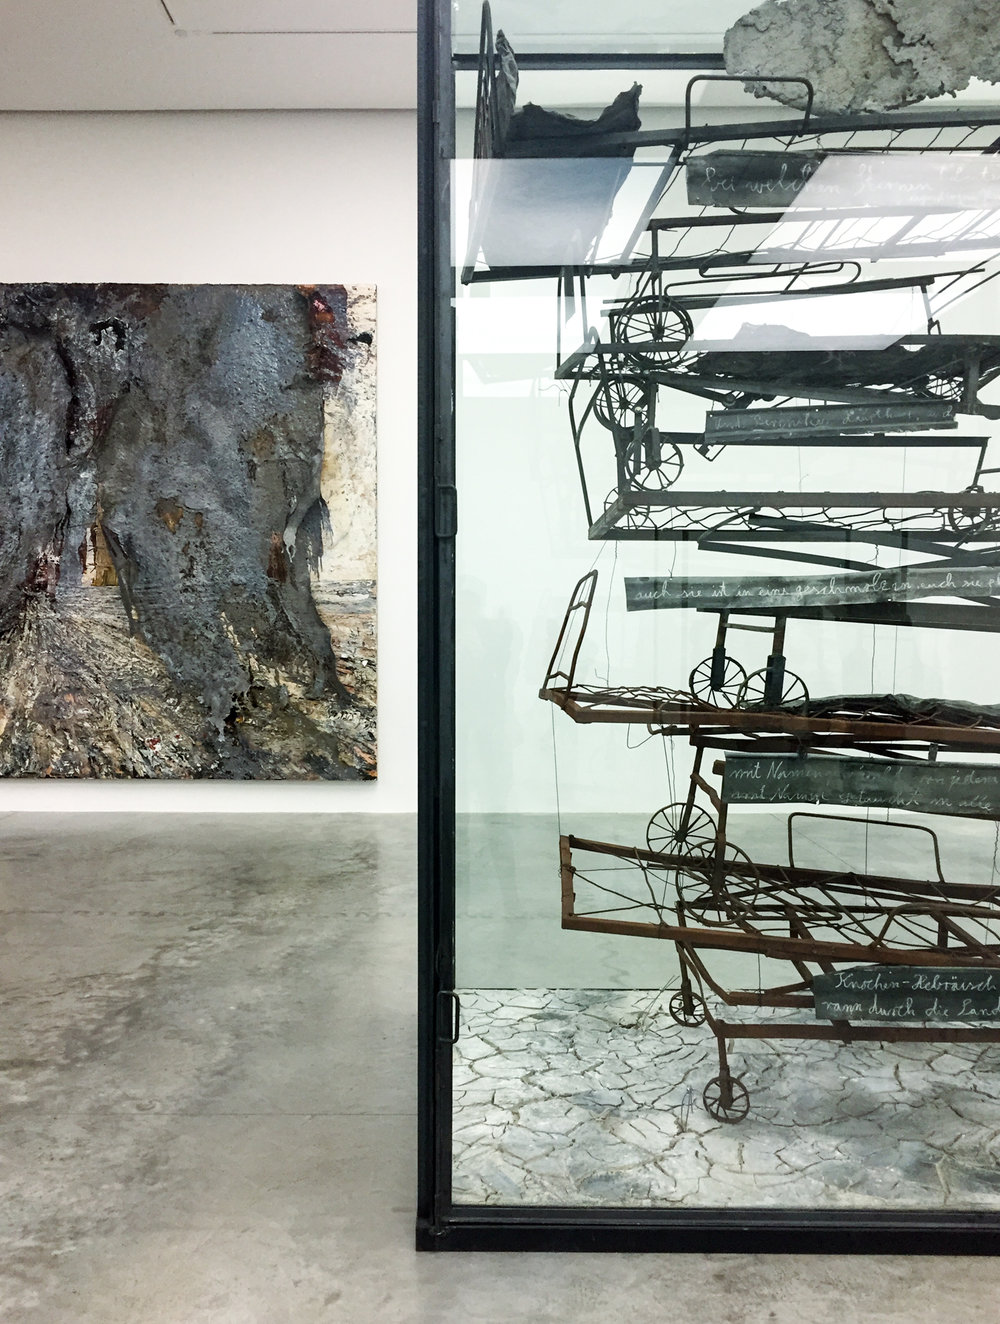 Walhalla (left), Himmelsschlucht (right) / Ansel Kiefer